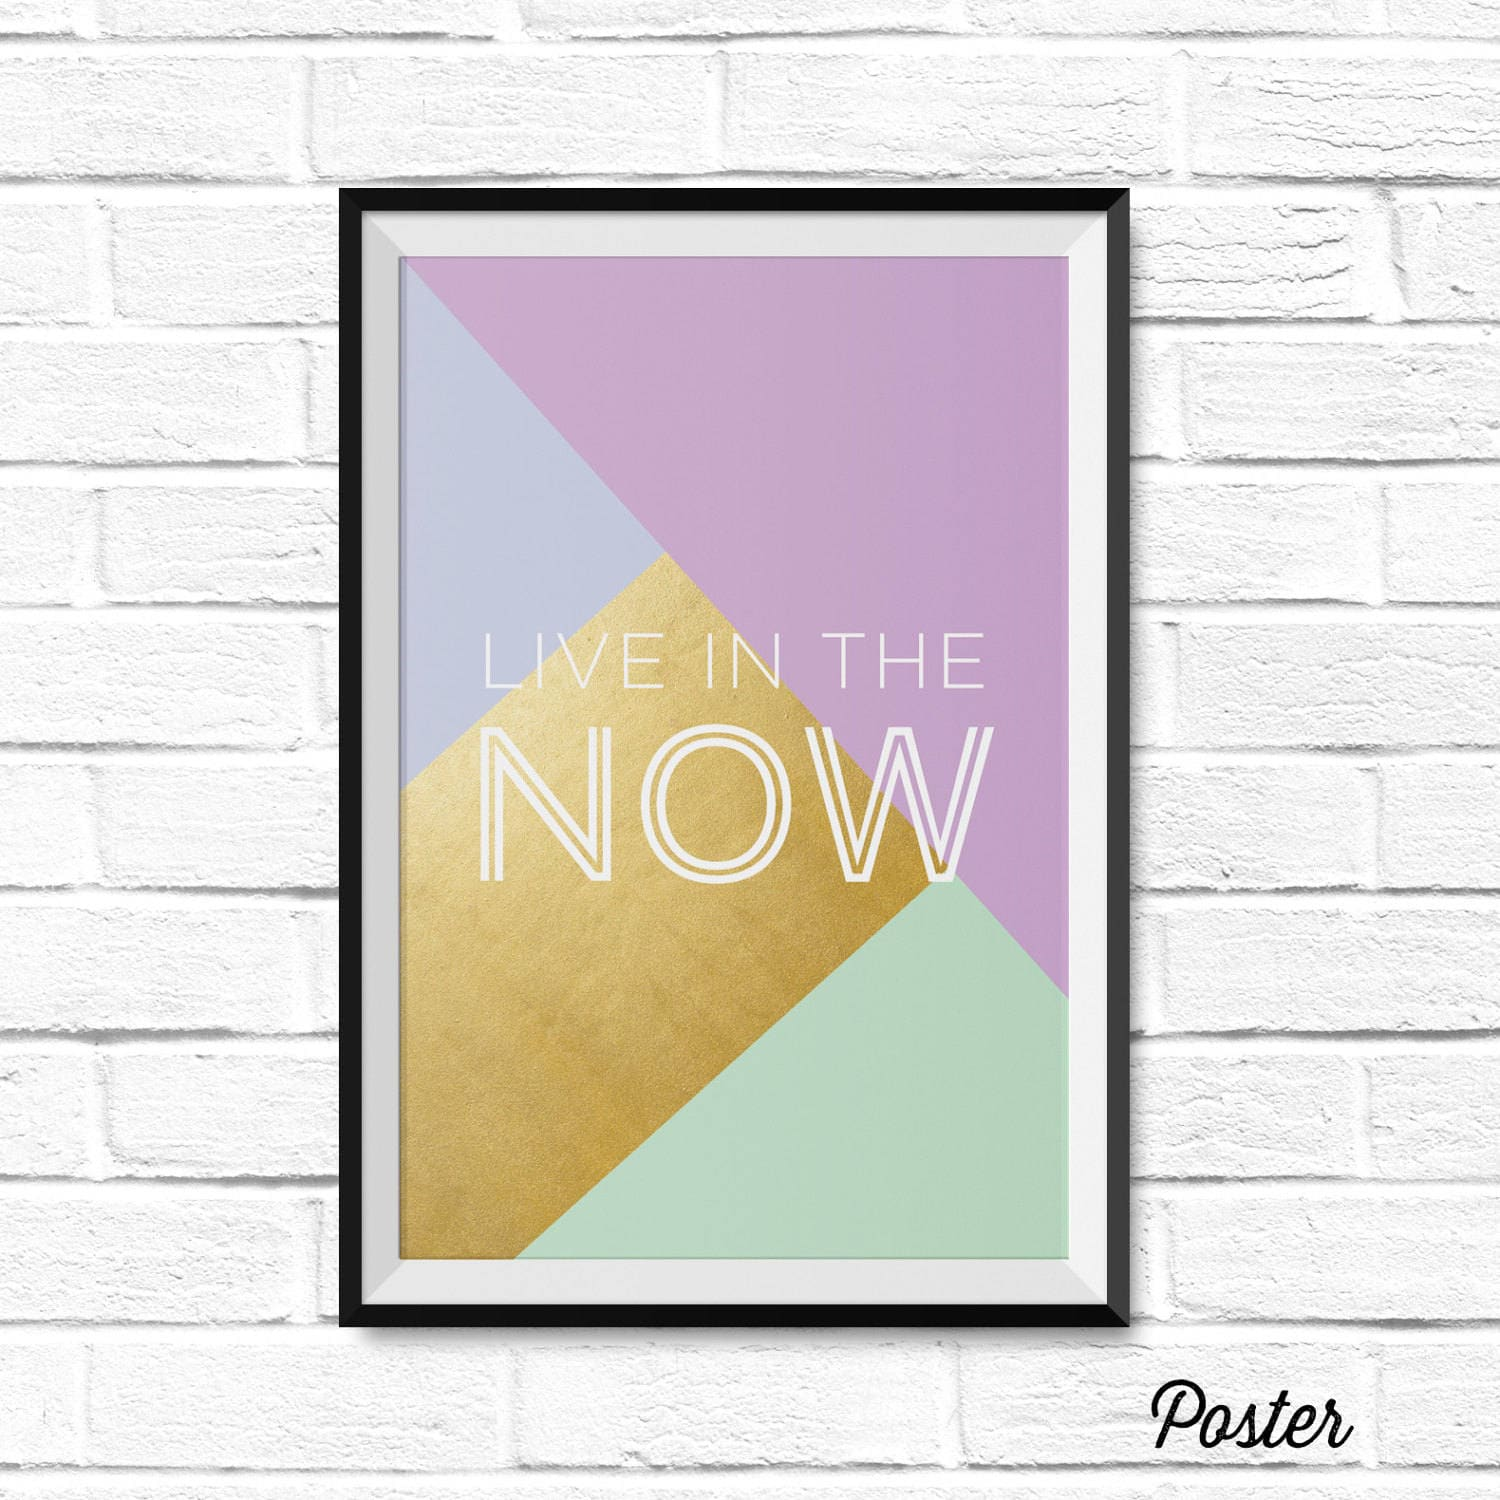 Live in the Now Canvas or Poster Quote Home Decor | Etsy